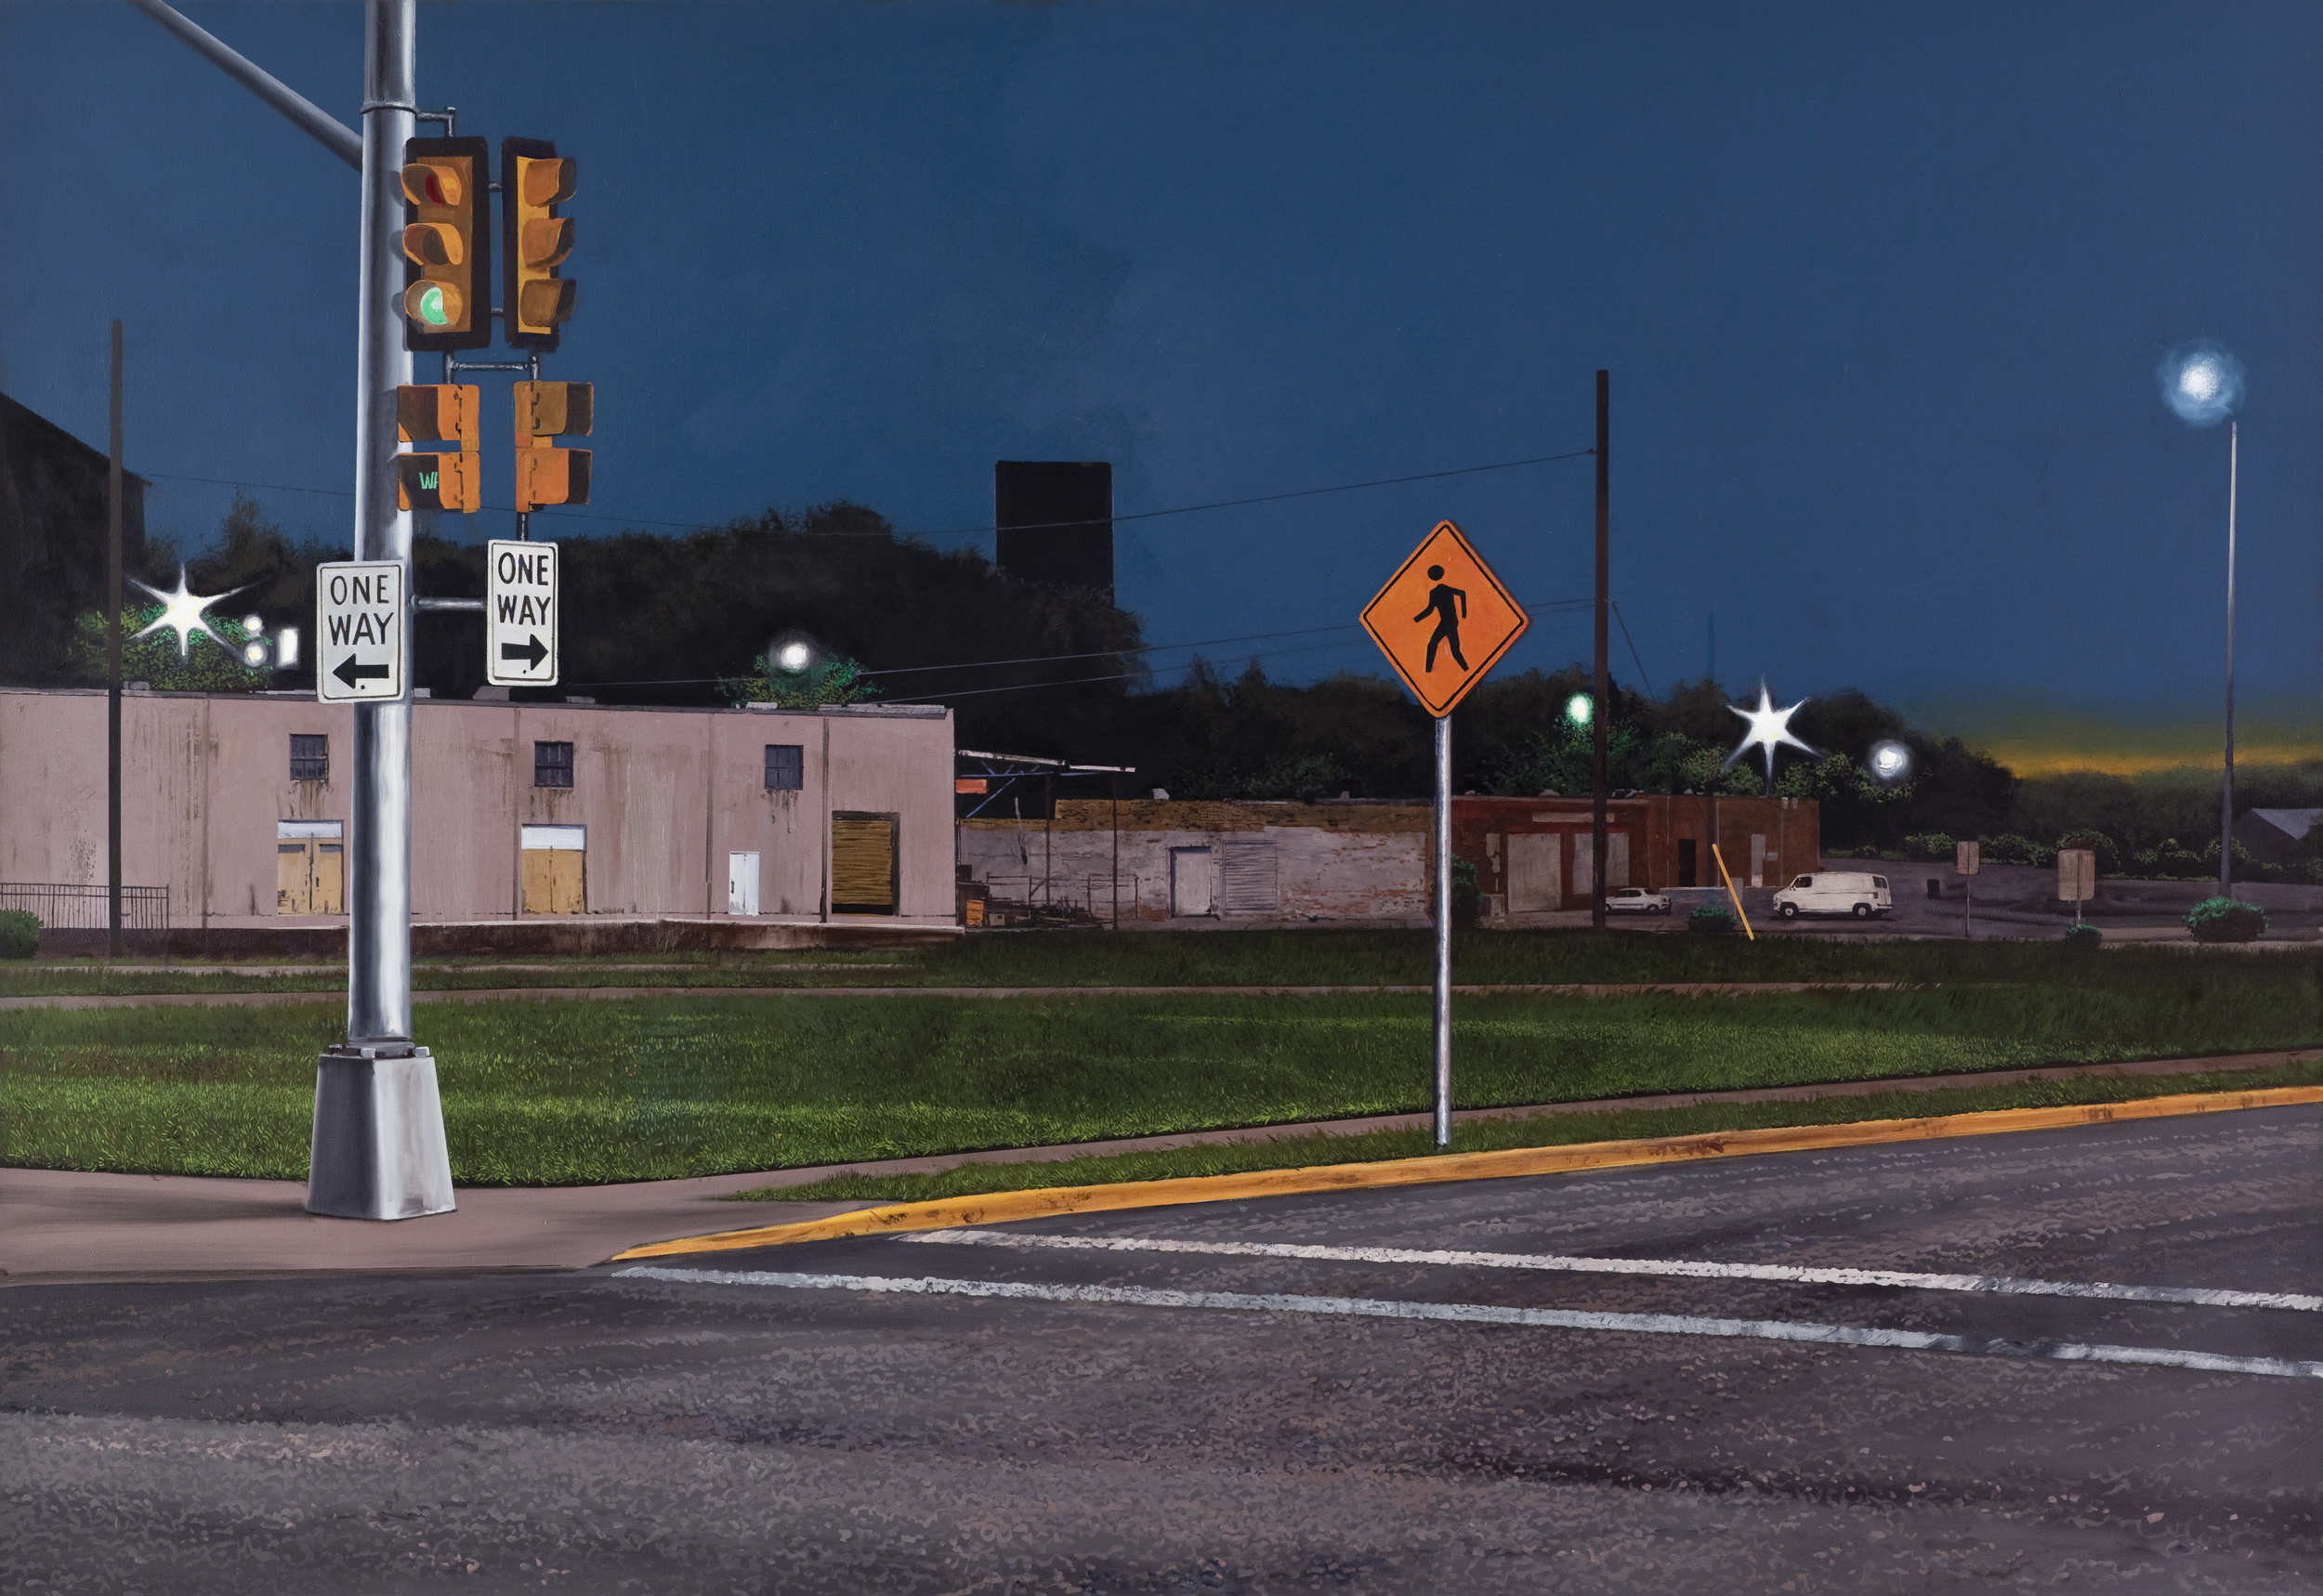 """Daniel Blagg,  Night Walker,  oil on canvas, 60 x 90"""" $16,000. Contact Artspace111 to purchase."""